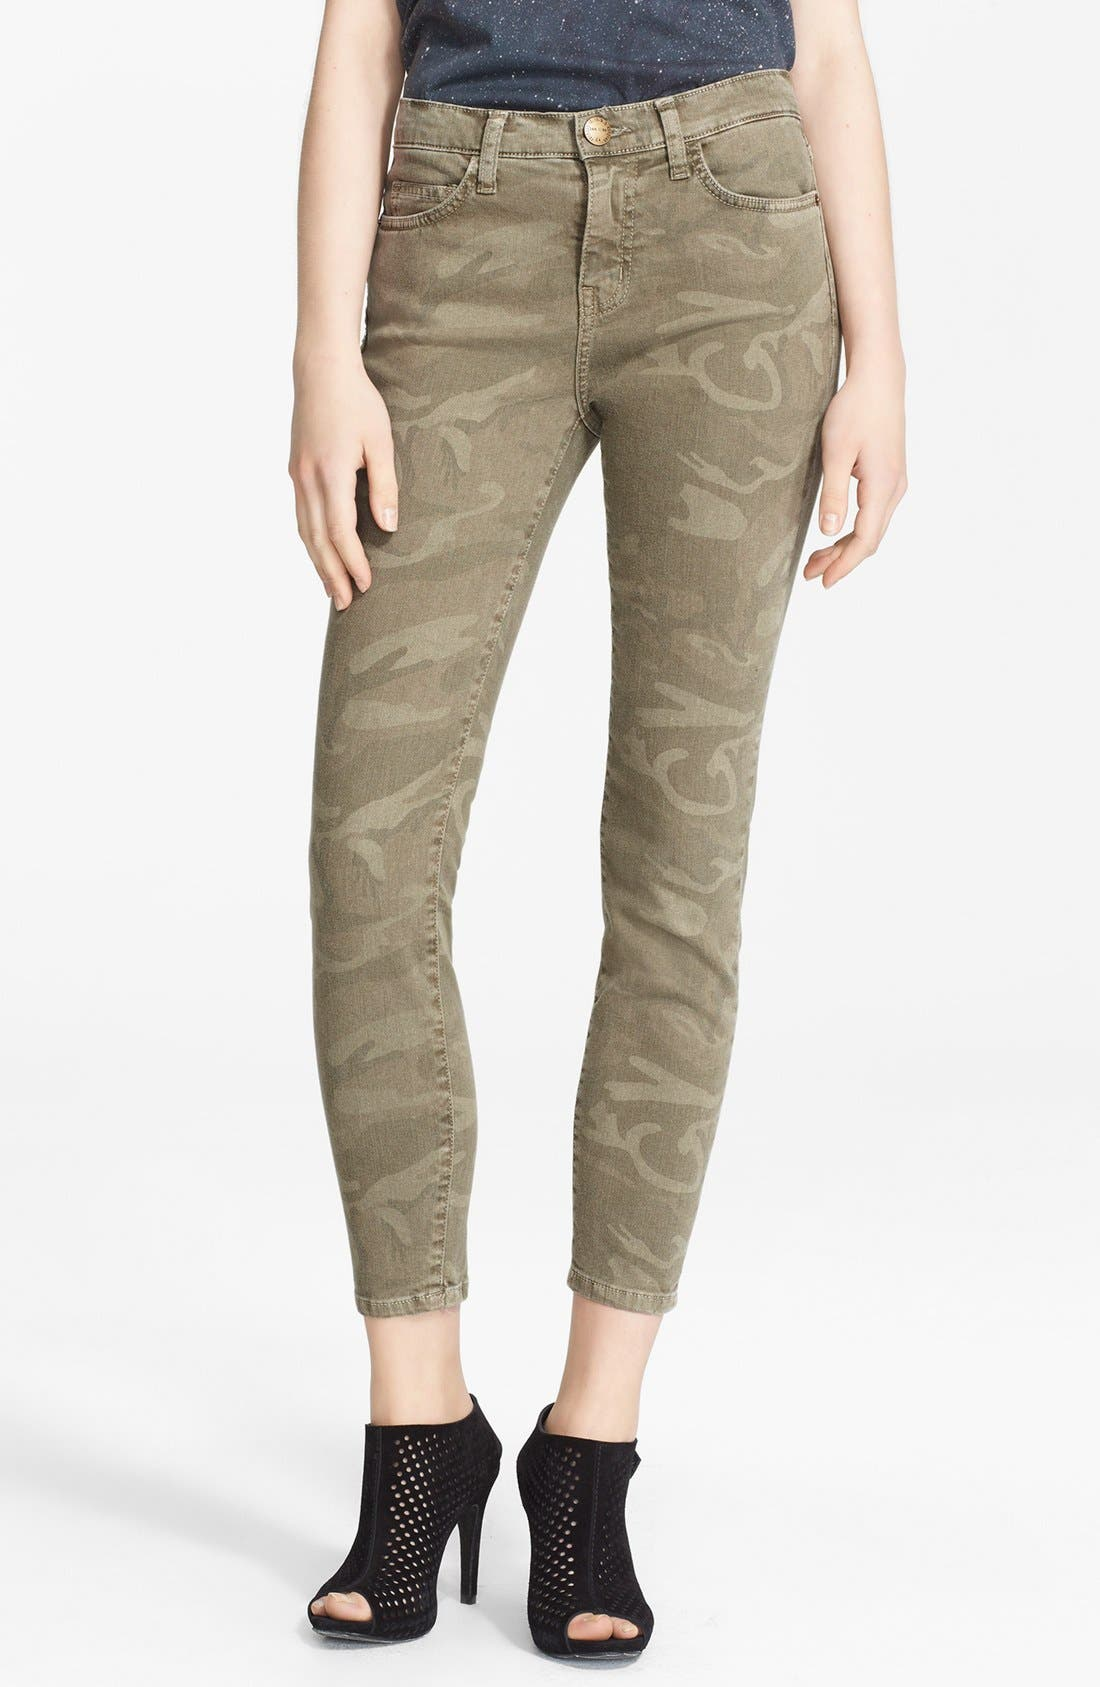 Main Image - Current/Elliott 'The Stiletto' Print Skinny Jeans (Camo)